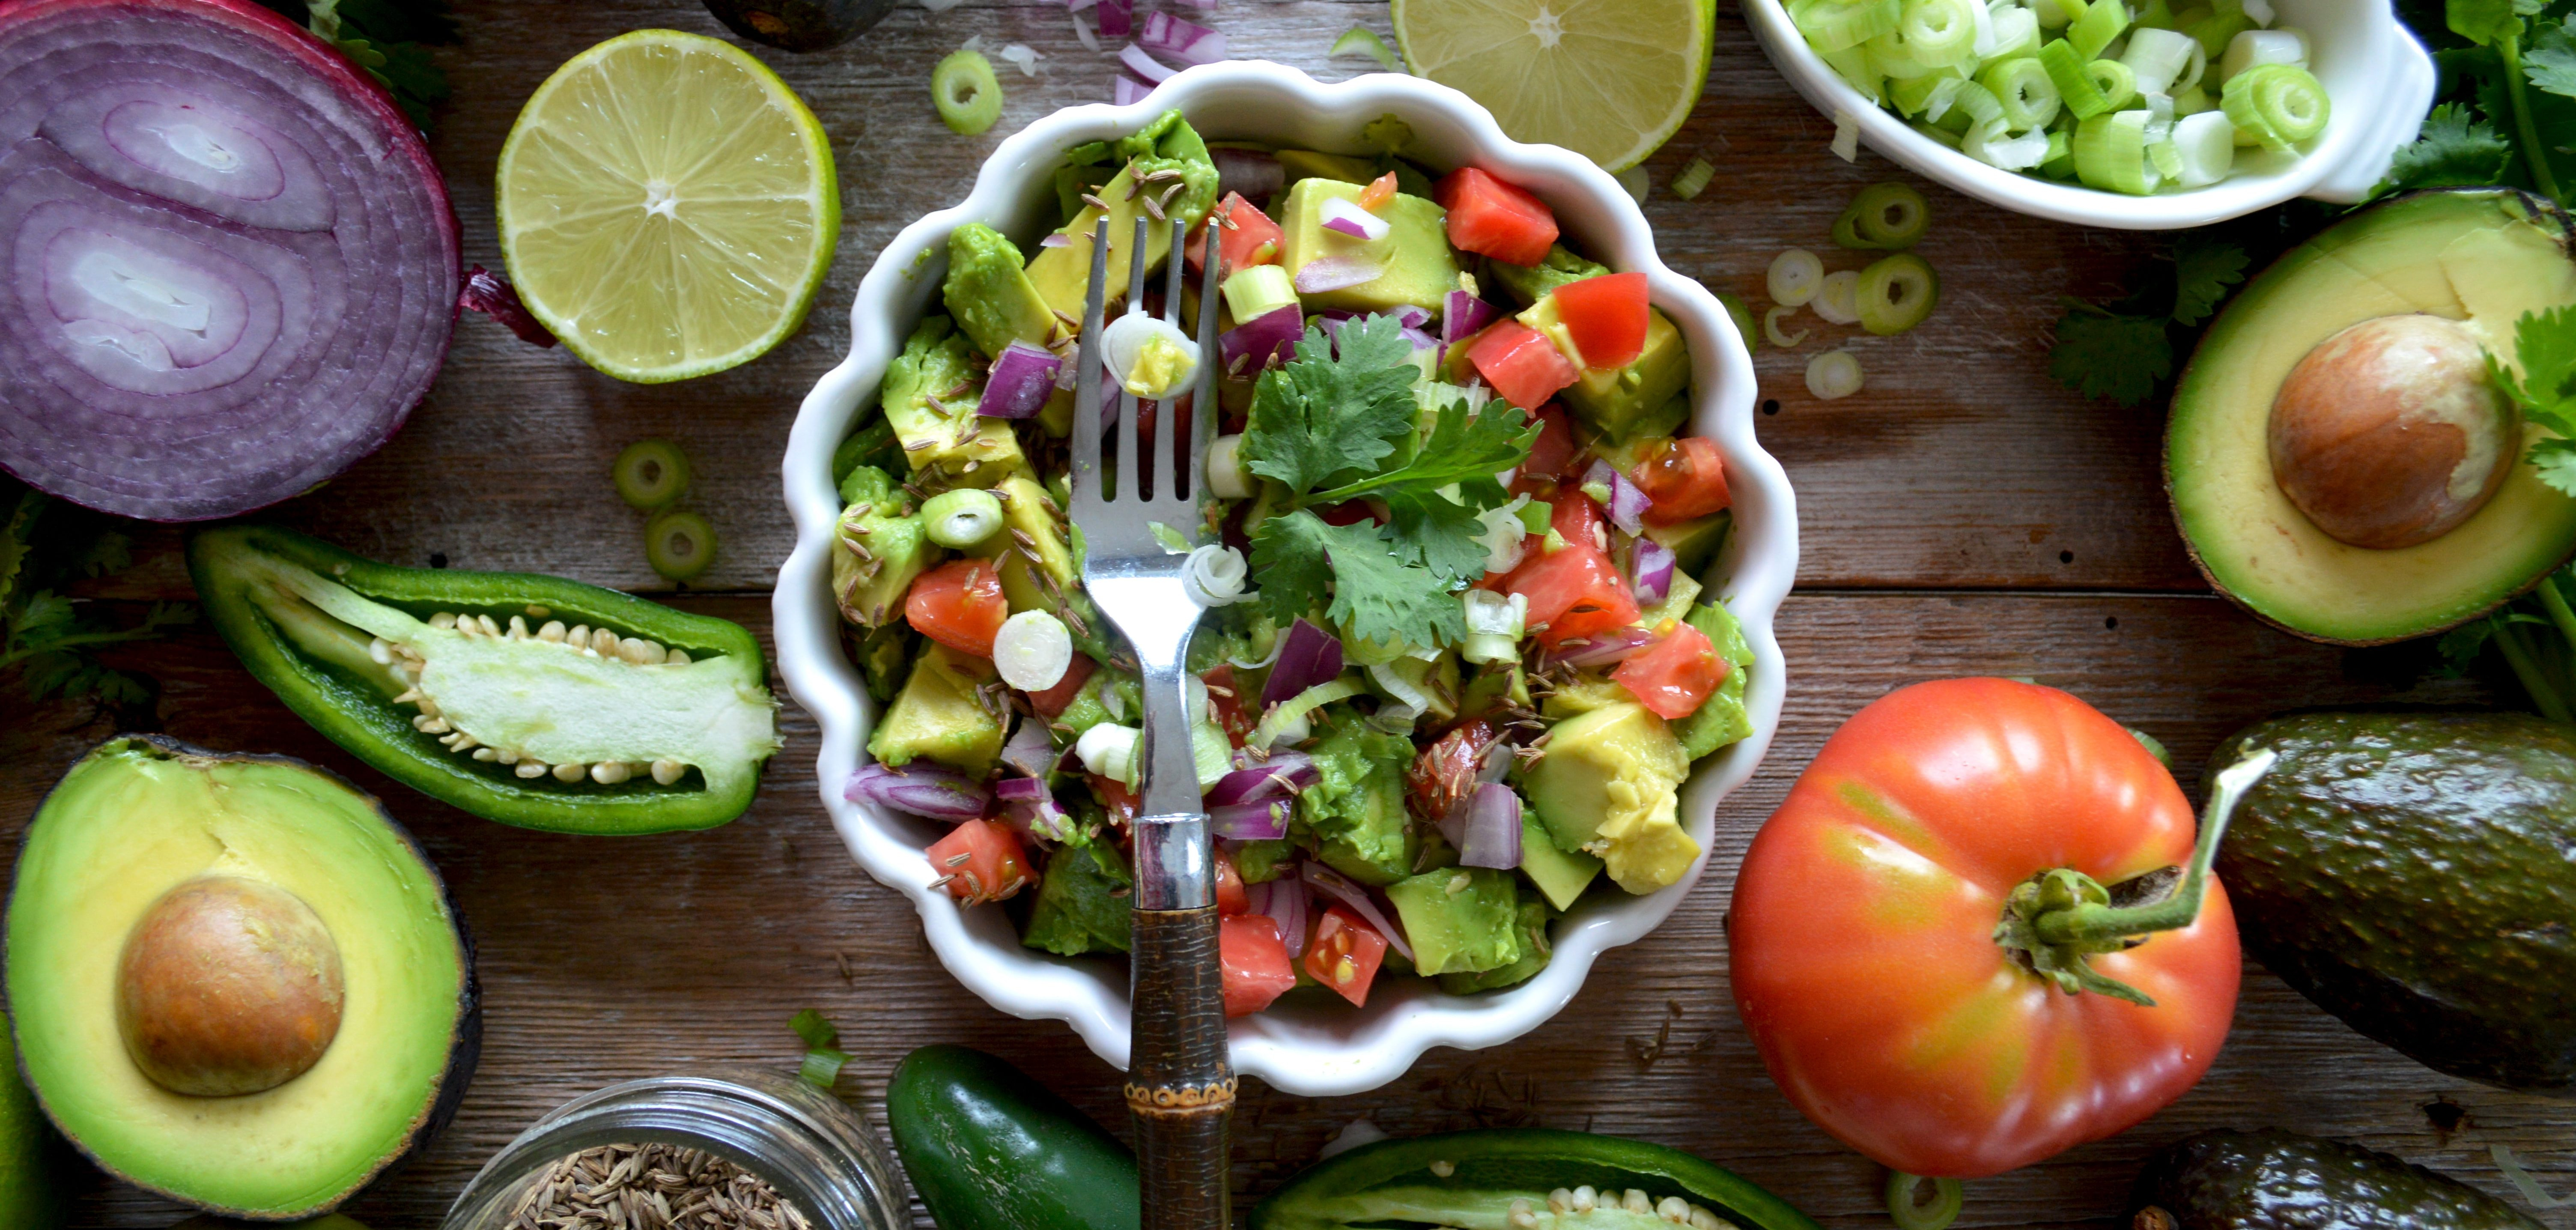 beautiful vibrant vegetables and salad in a bowl